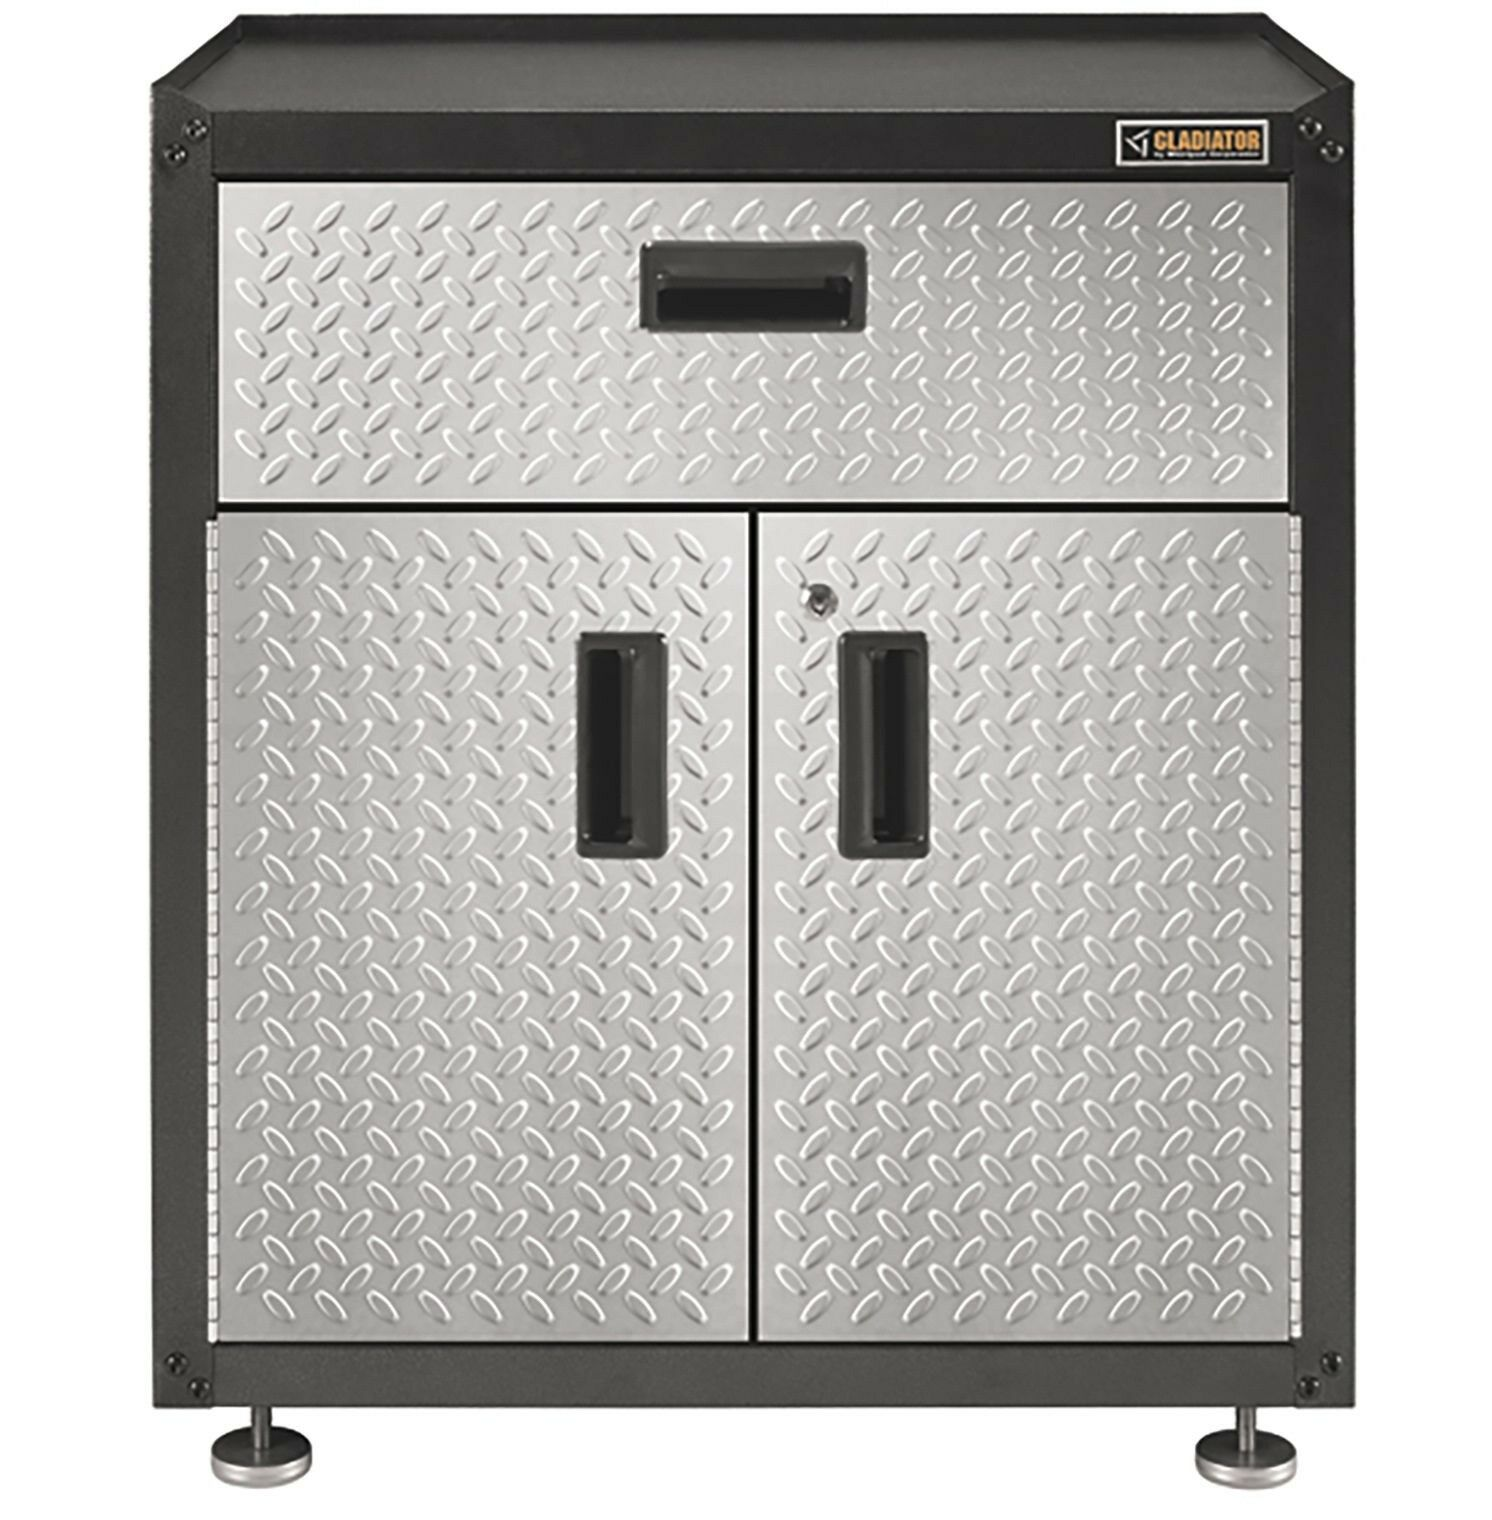 Gladiator 28-inch Ready-to-Assemble Steel 2-Door Freestanding Garage Cabinet wit